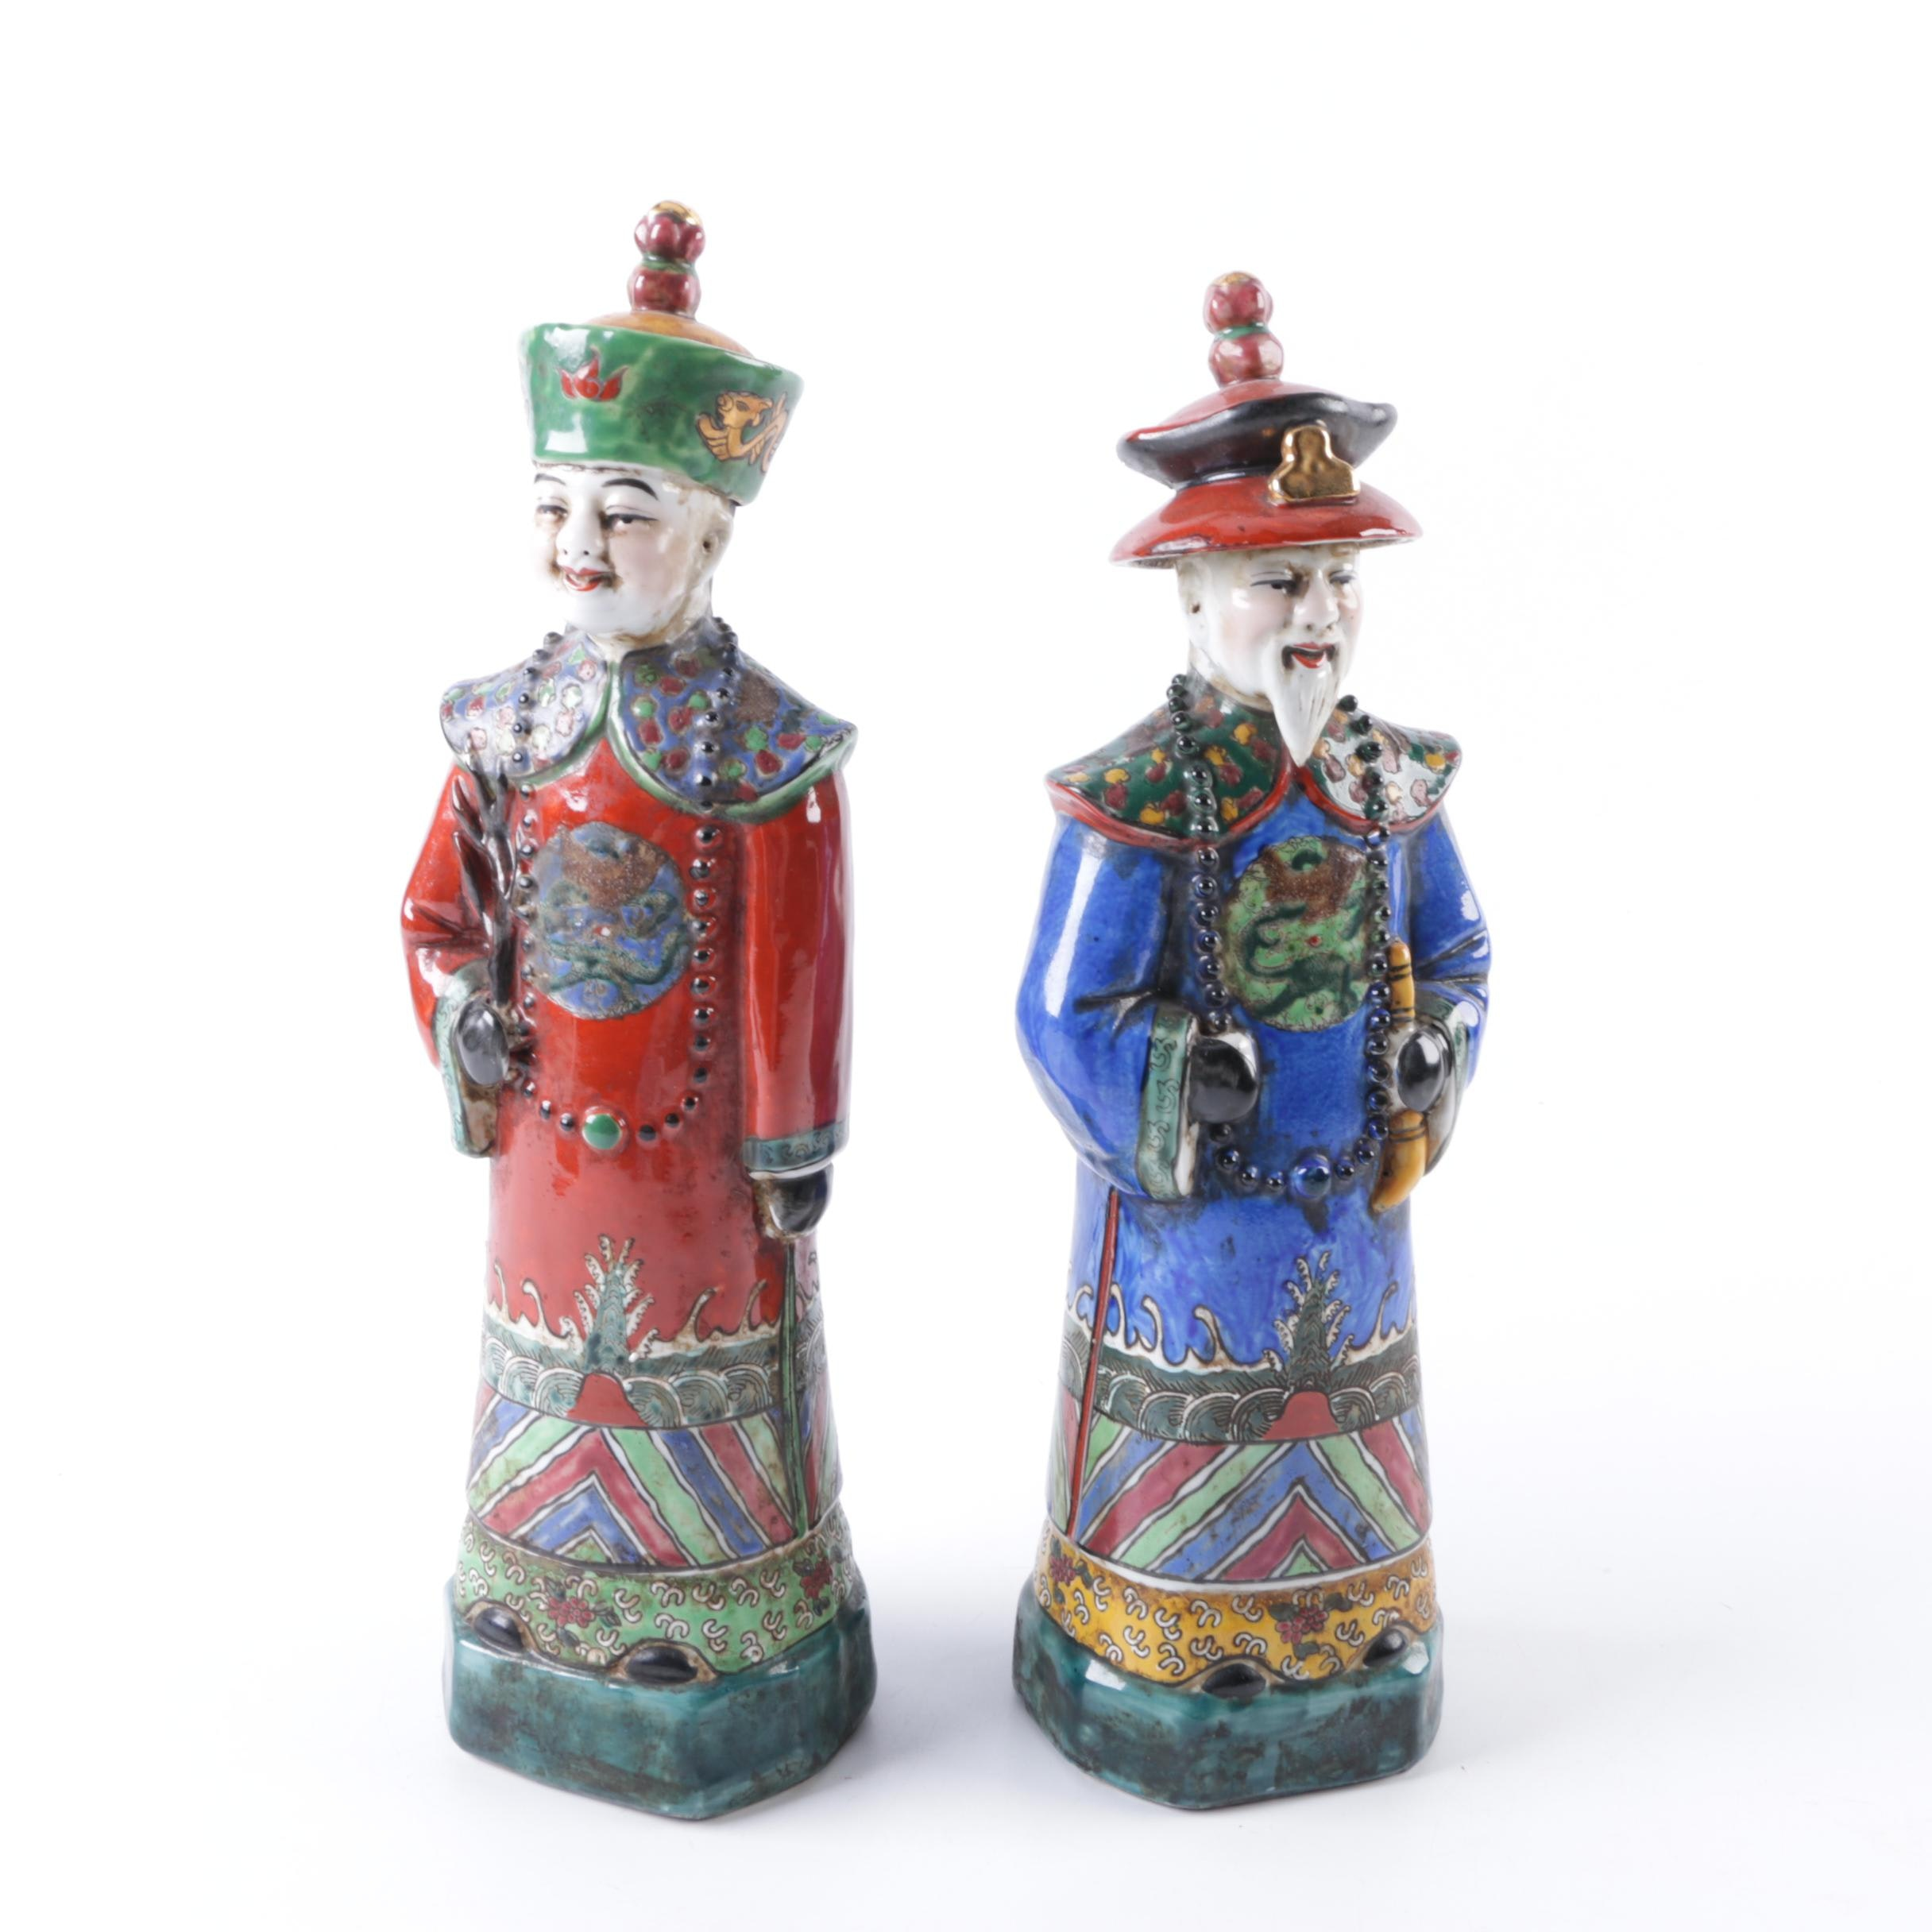 Pair of Chinese Ceramic Figurines Dressed As Qing Dynasty Officials